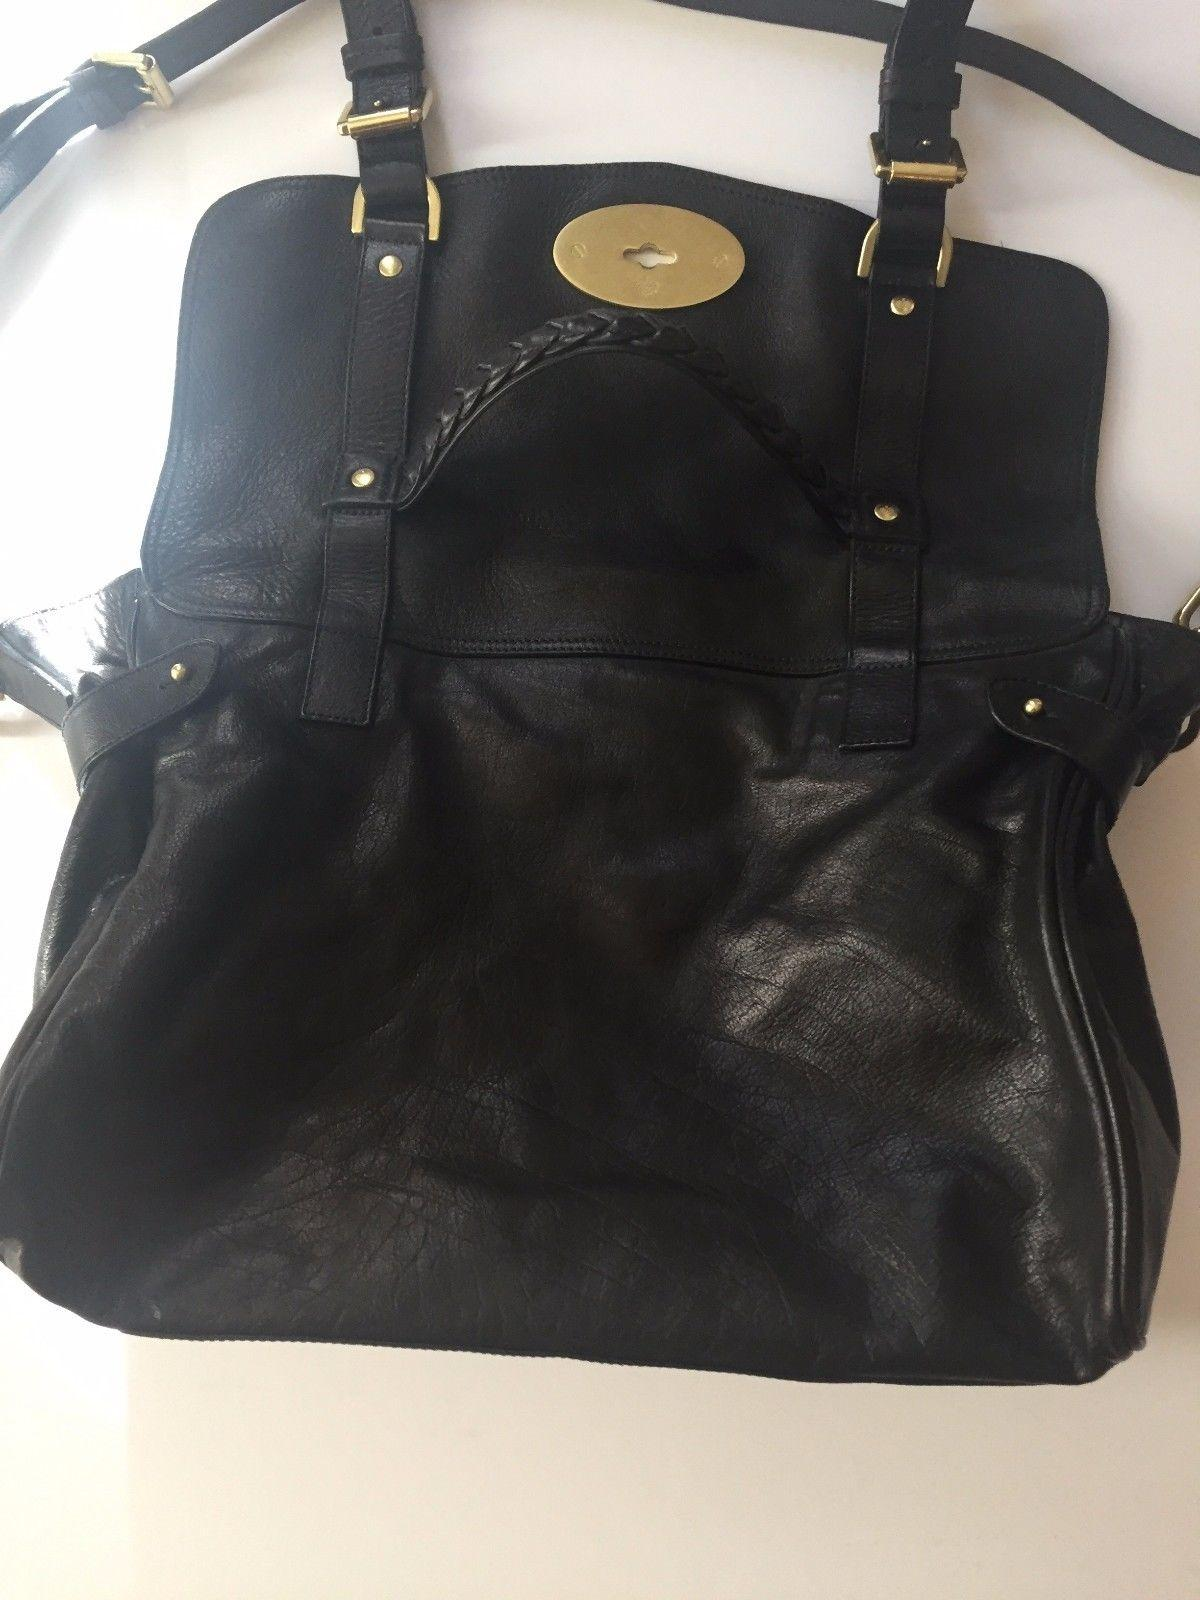 ... low price mulberry oversized alexa black leather satchel 6a959 d2da7 2c4259b59a7f4